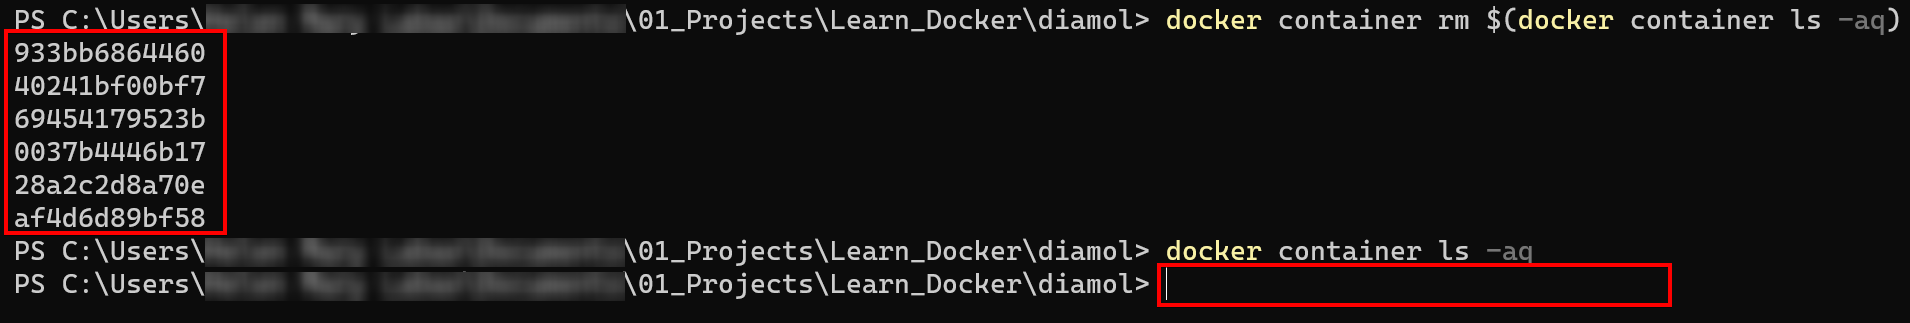 Removing Both Stopped and Running Containers